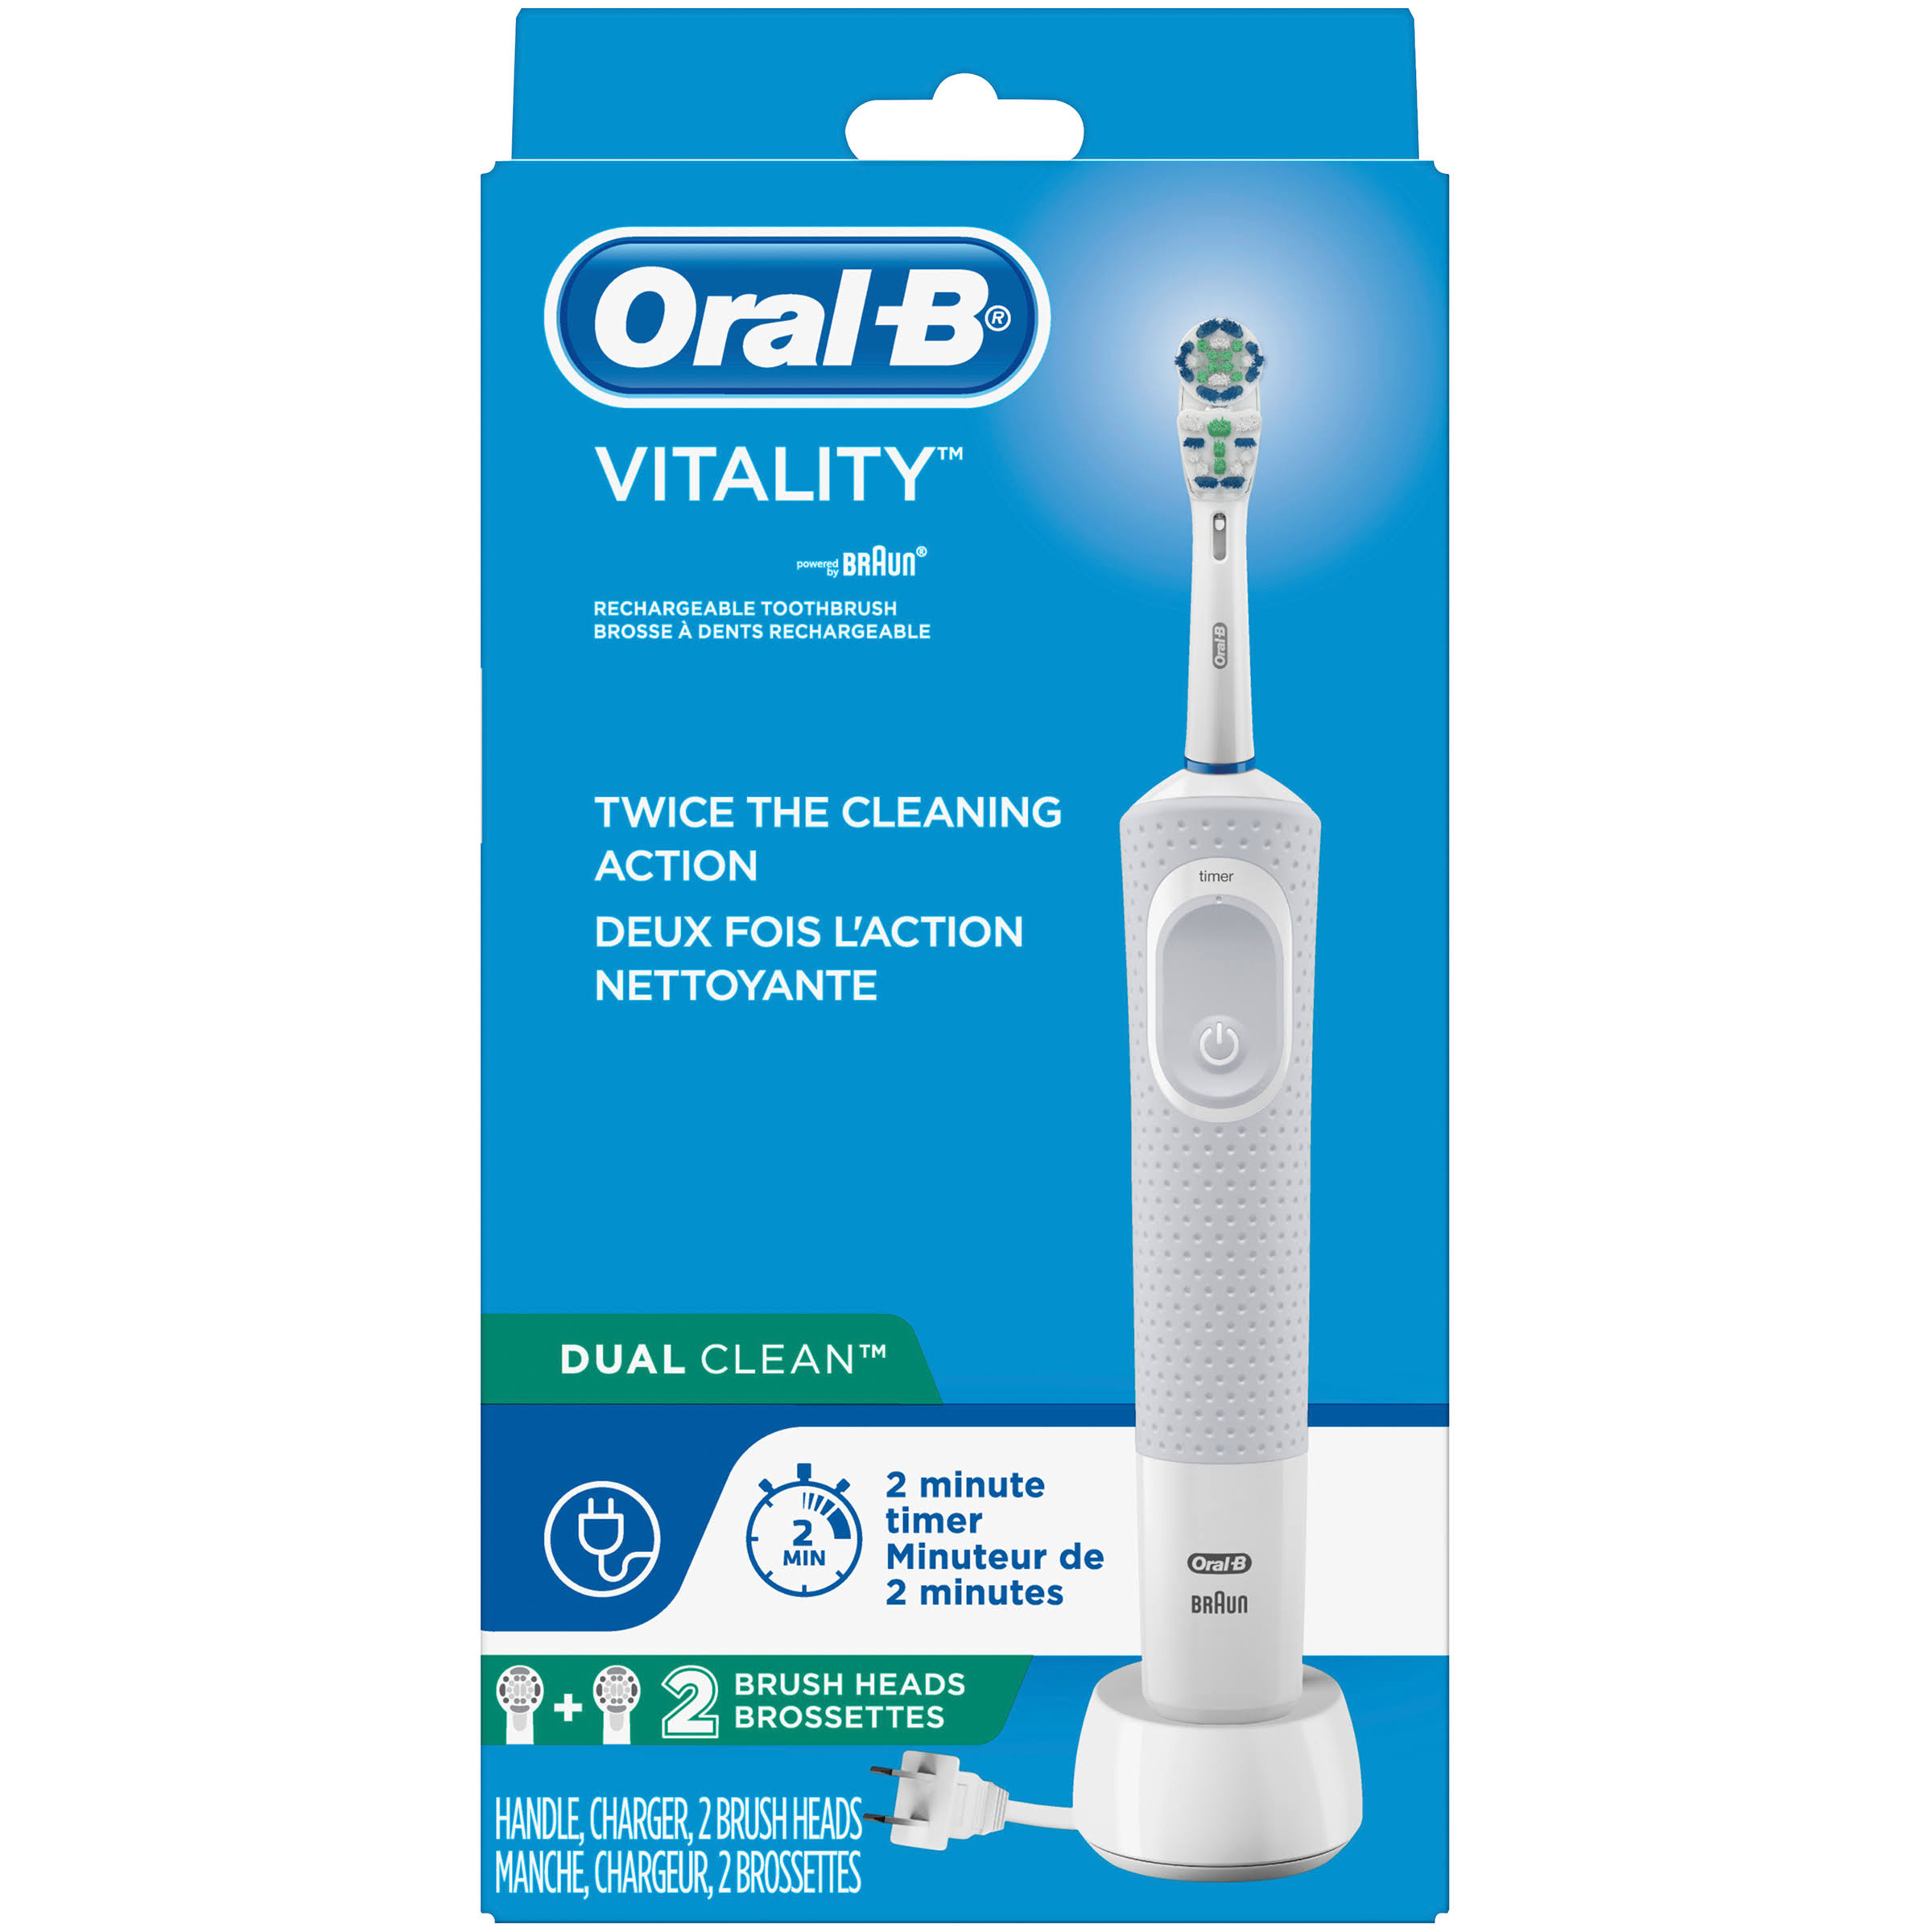 Oral B Vitality Dual Clean Electric Rechargeable Toothbrush